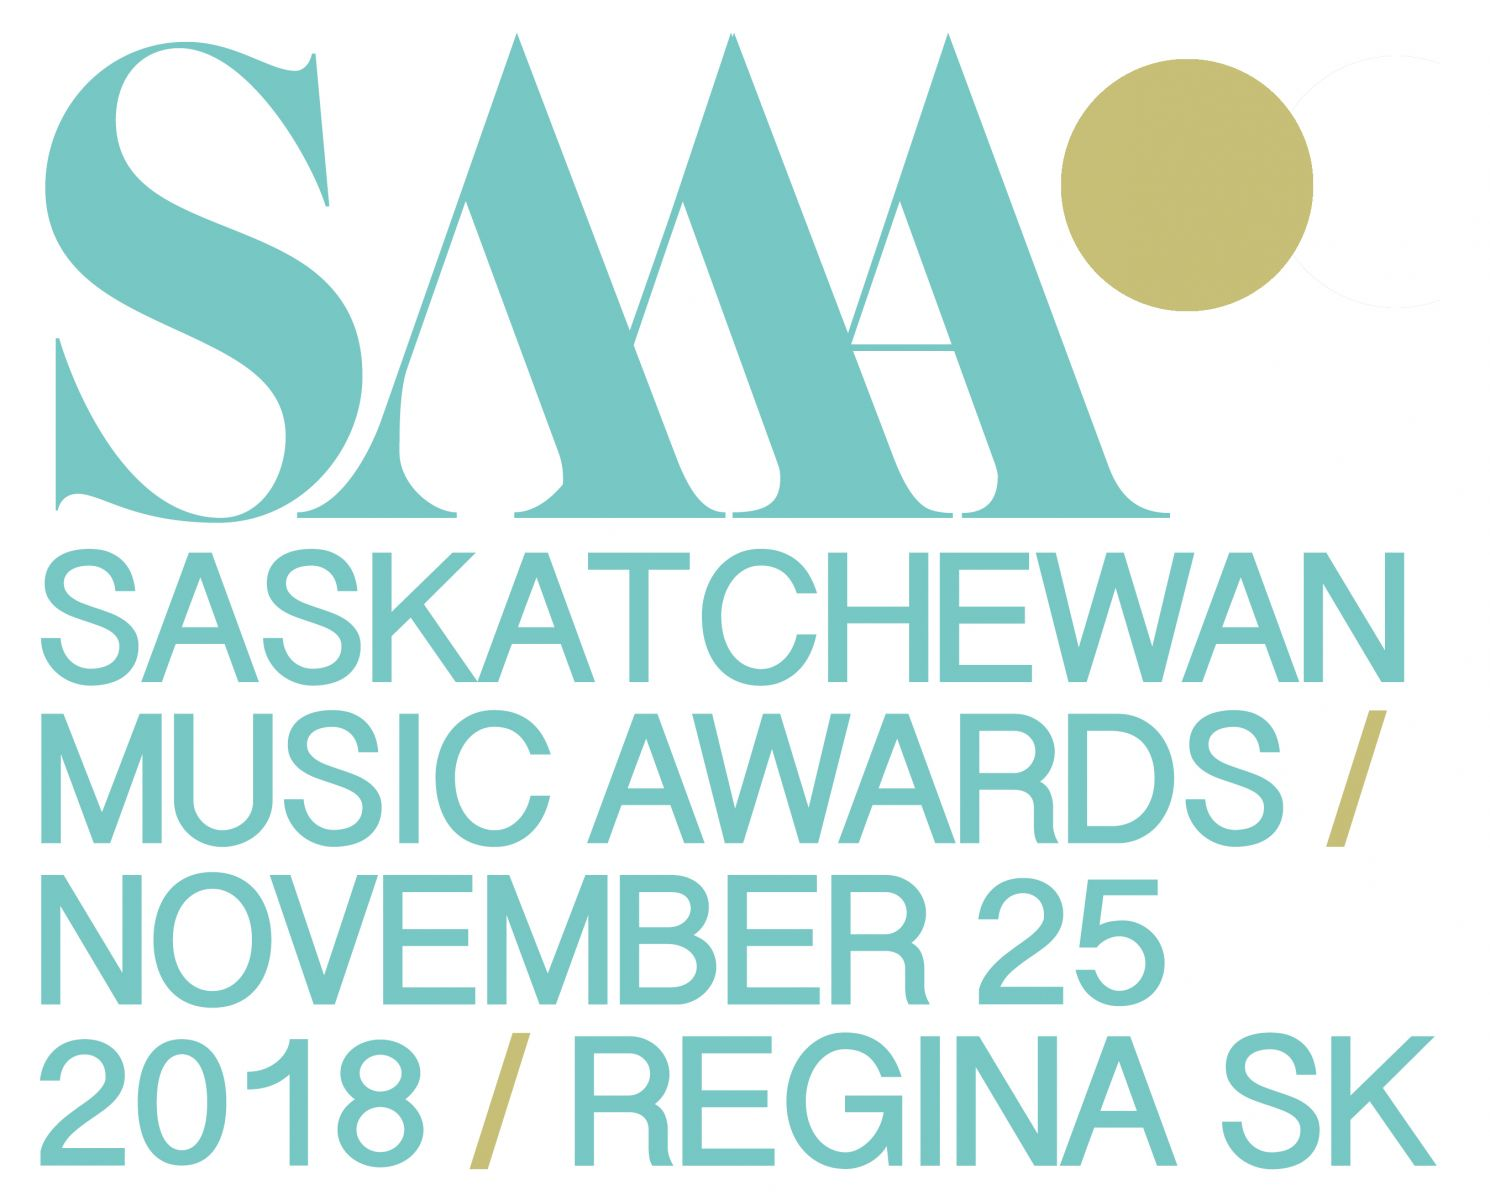 Saskatchewan Music Awards